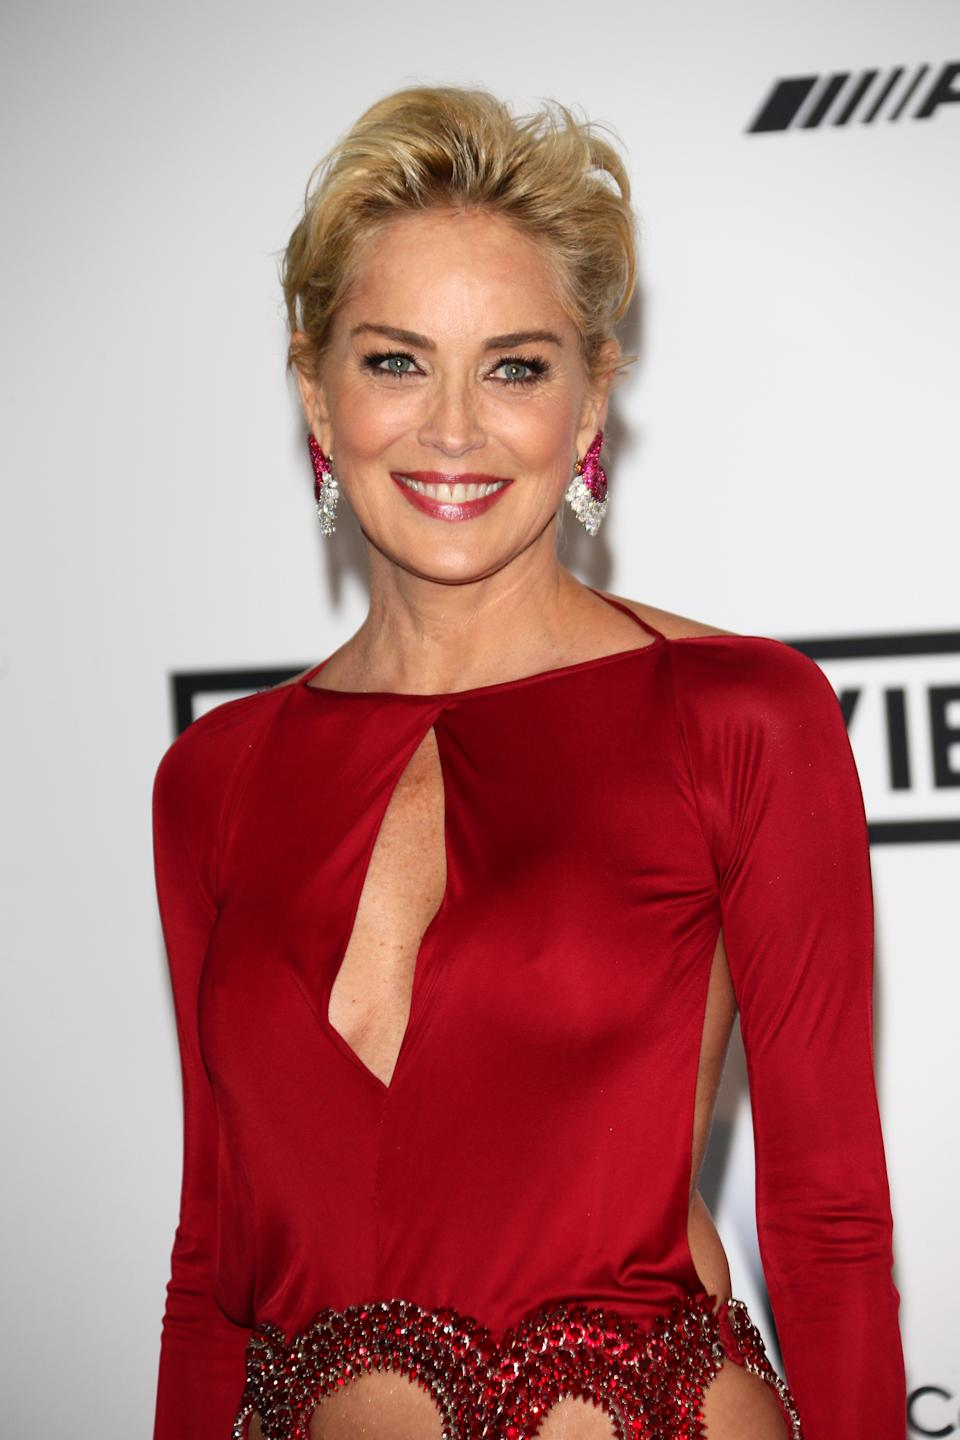 Sharon Stone attends amfAR's 21st Cinema Against AIDS Gala Presented By WORLDVIEW, BOLD FILMS, And BVLGARI at Hotel du Cap-Eden-Roc on May 22, 2014 in Cap d'Antibes, France.